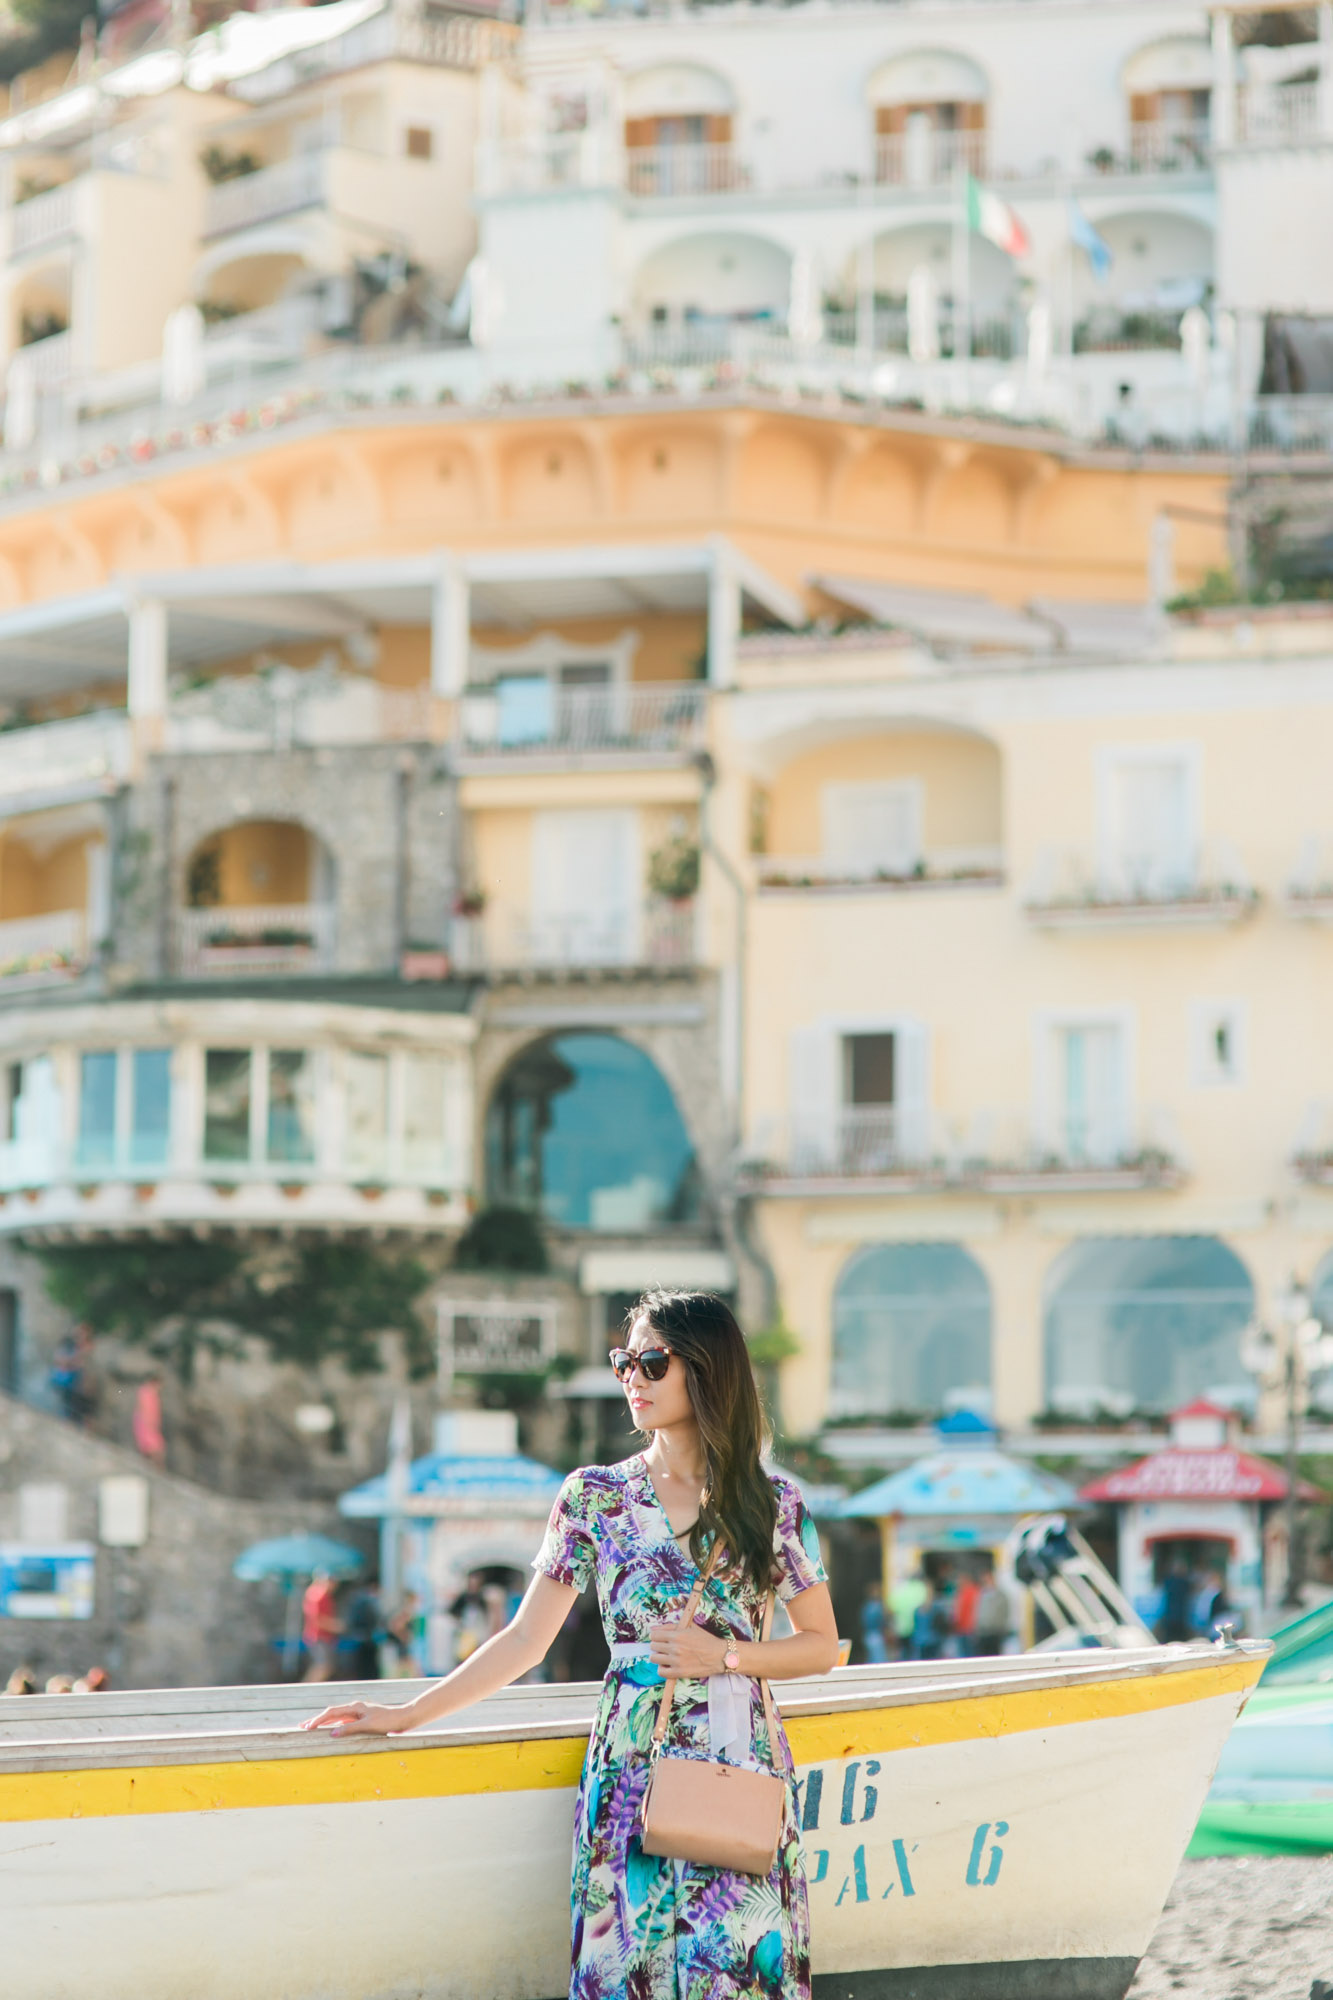 joeewong-reke-italy-amalfi-coast-positano-honeymoon-08